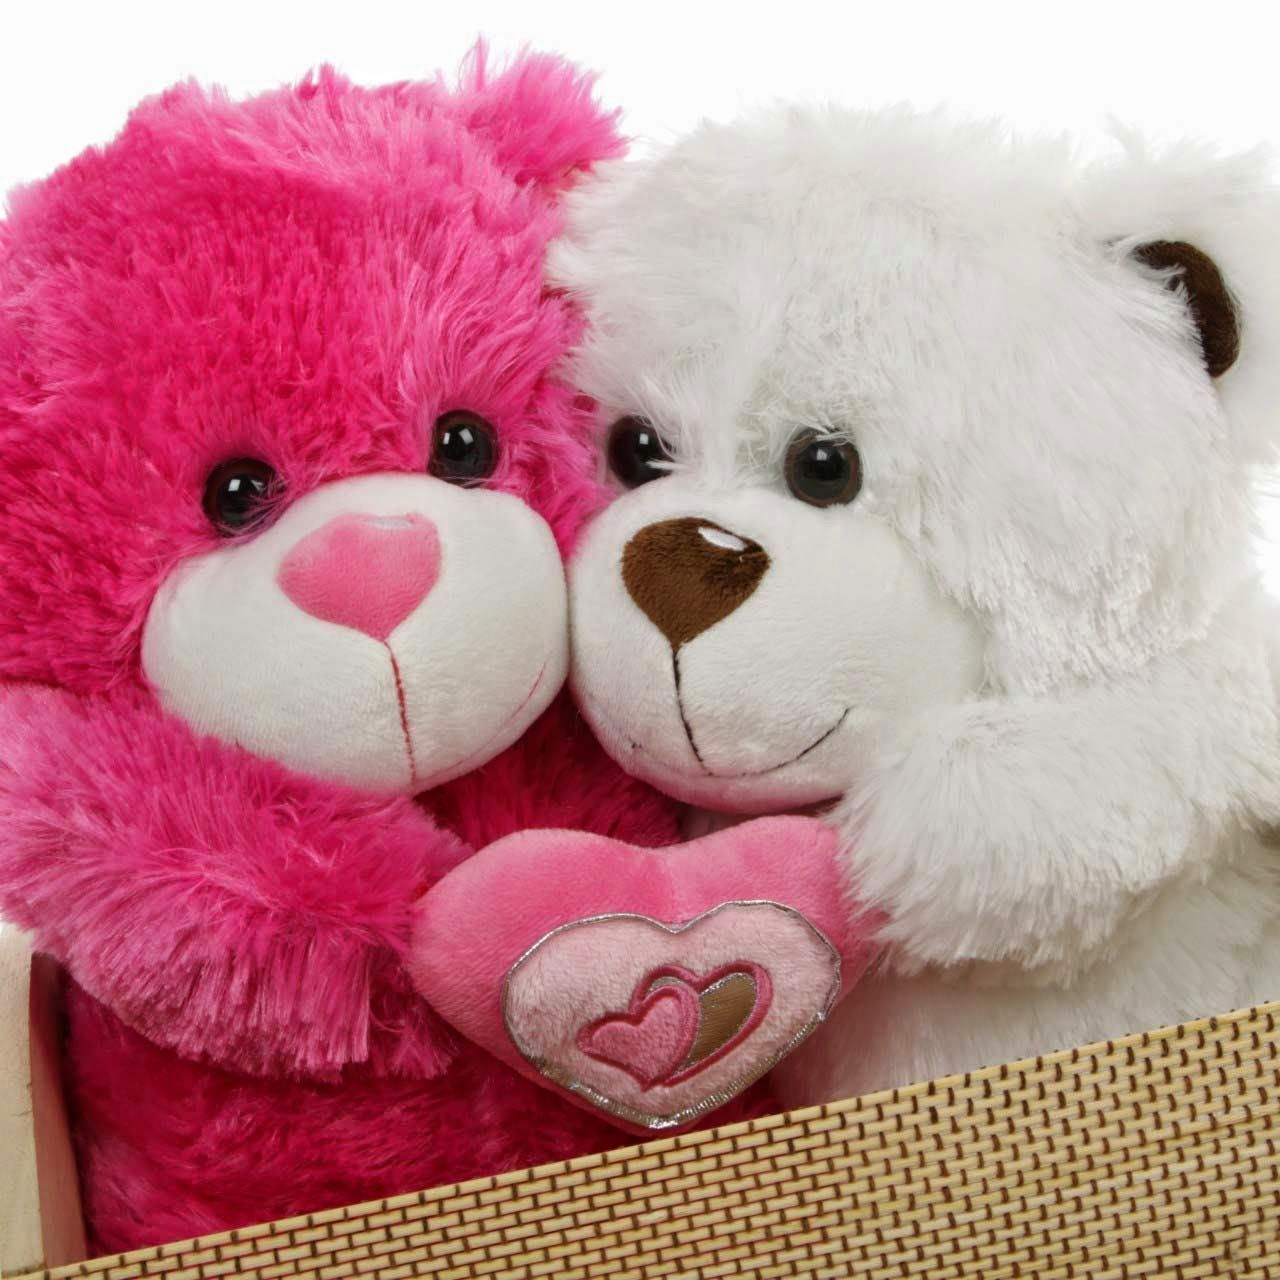 Cute Teddy Bear And Love Wallpapers Download For Mobile 3